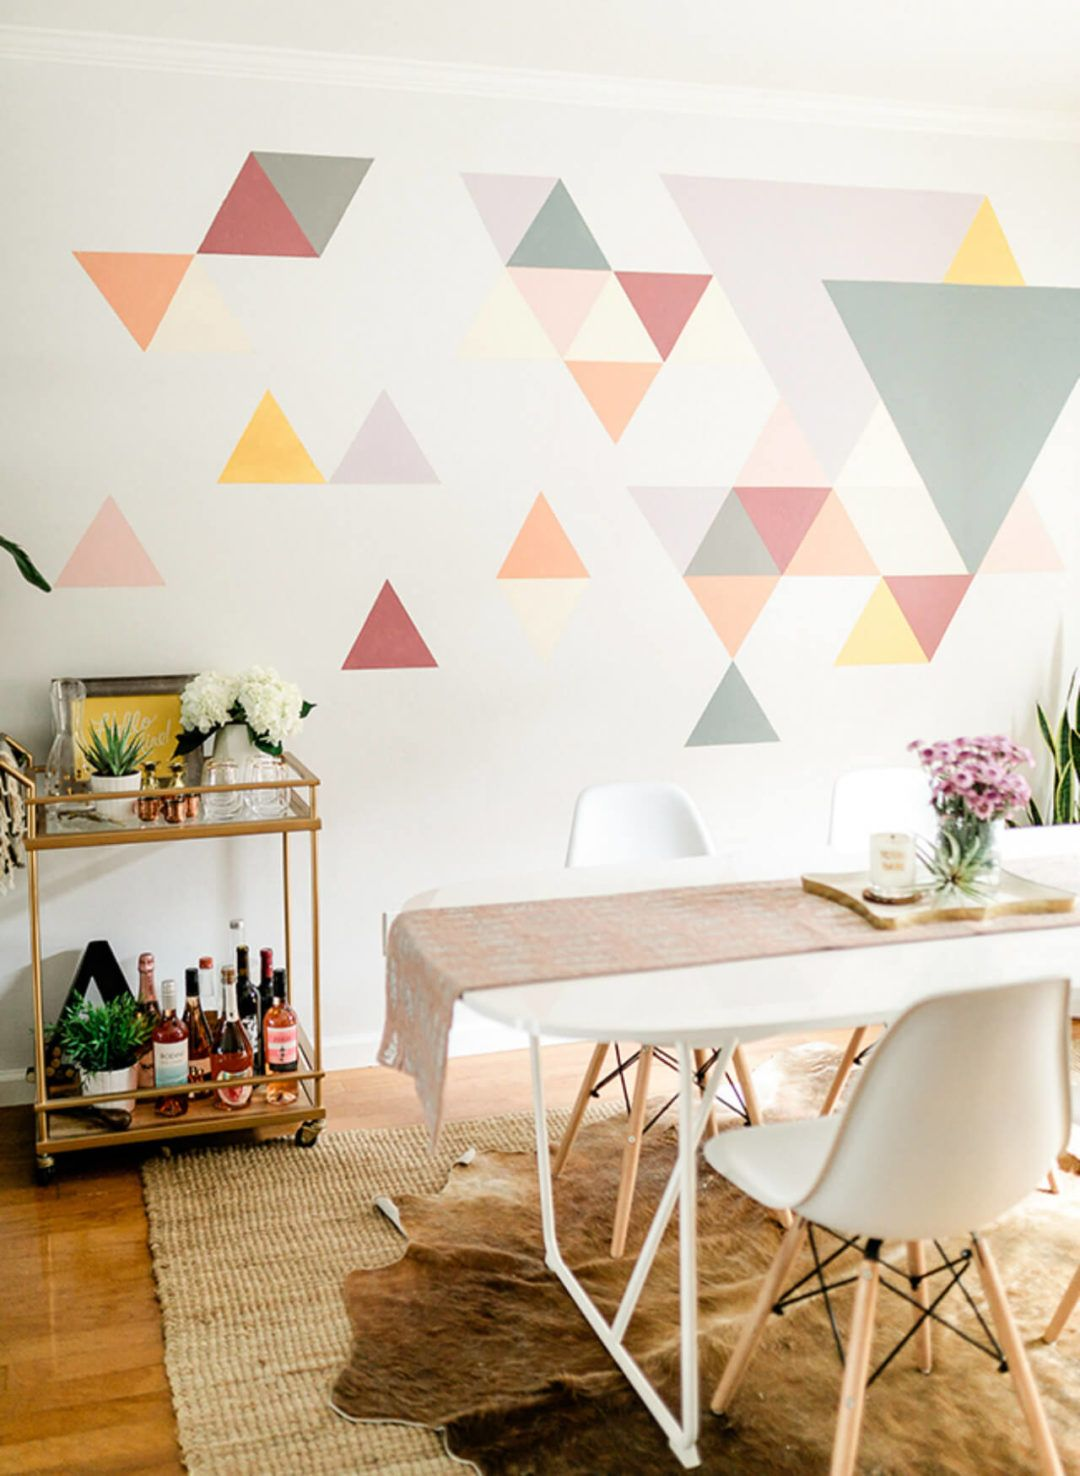 Do you want to make a statement without changing a whole room? Try an accent wall! Find some inspiration here with these stunning and inexpensive walls you can totally do yourself! Accent wall ideas | wall ideas | dress up walls | DIY tutorials | statement wall | interior design | design ideas #accentwall #DIY #thistimeofmine